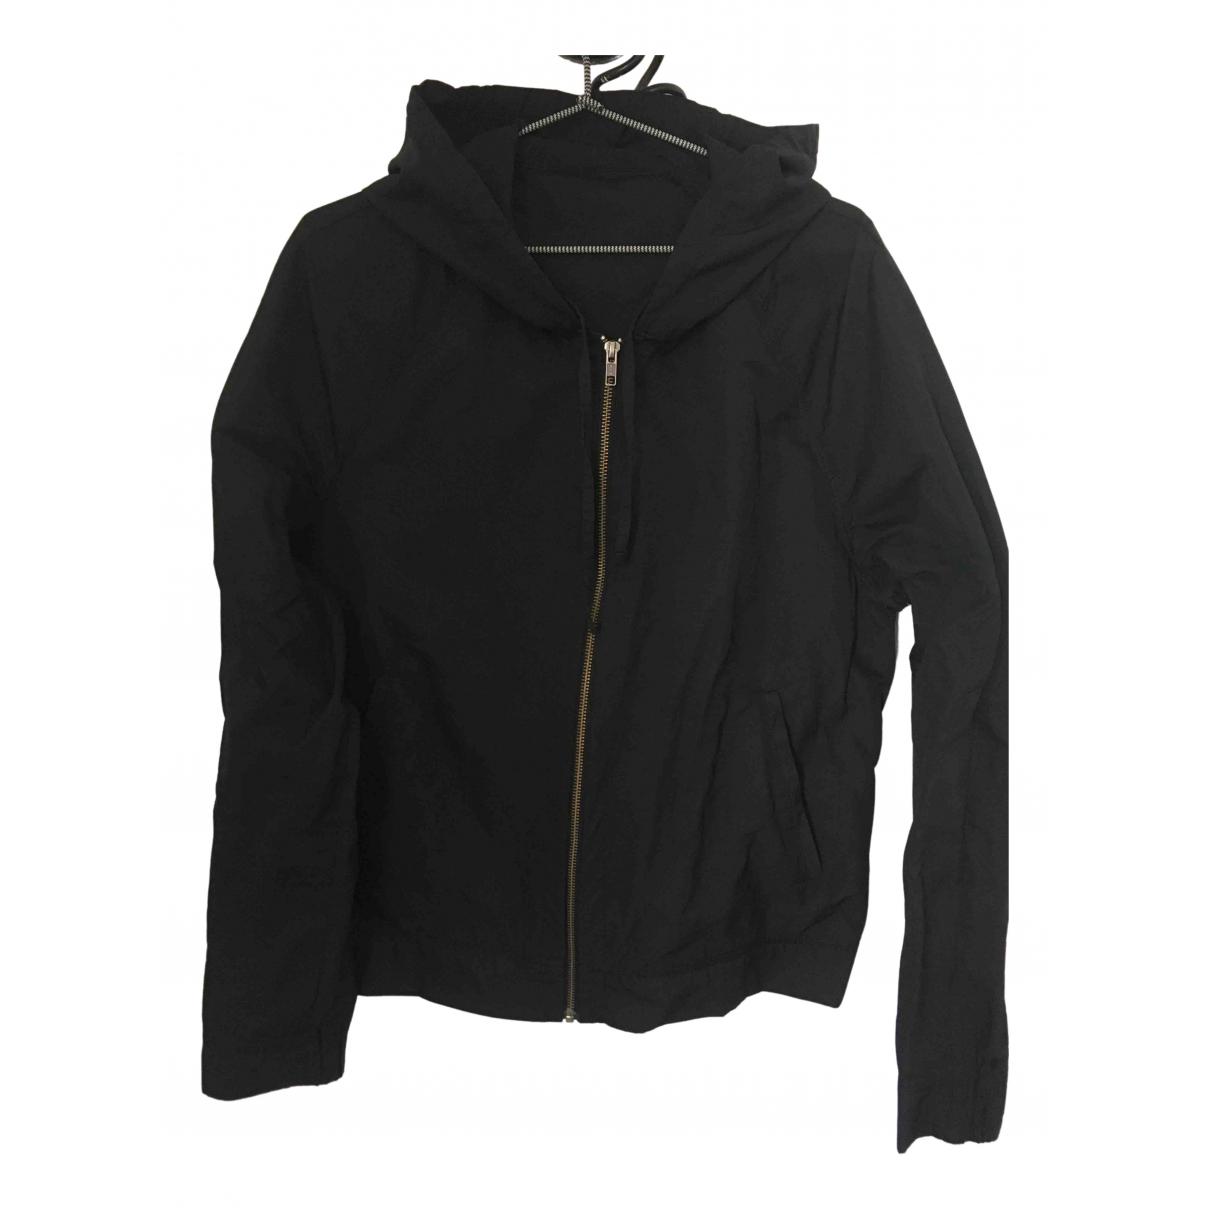 Lanvin For H&m \N Black jacket  for Men M International